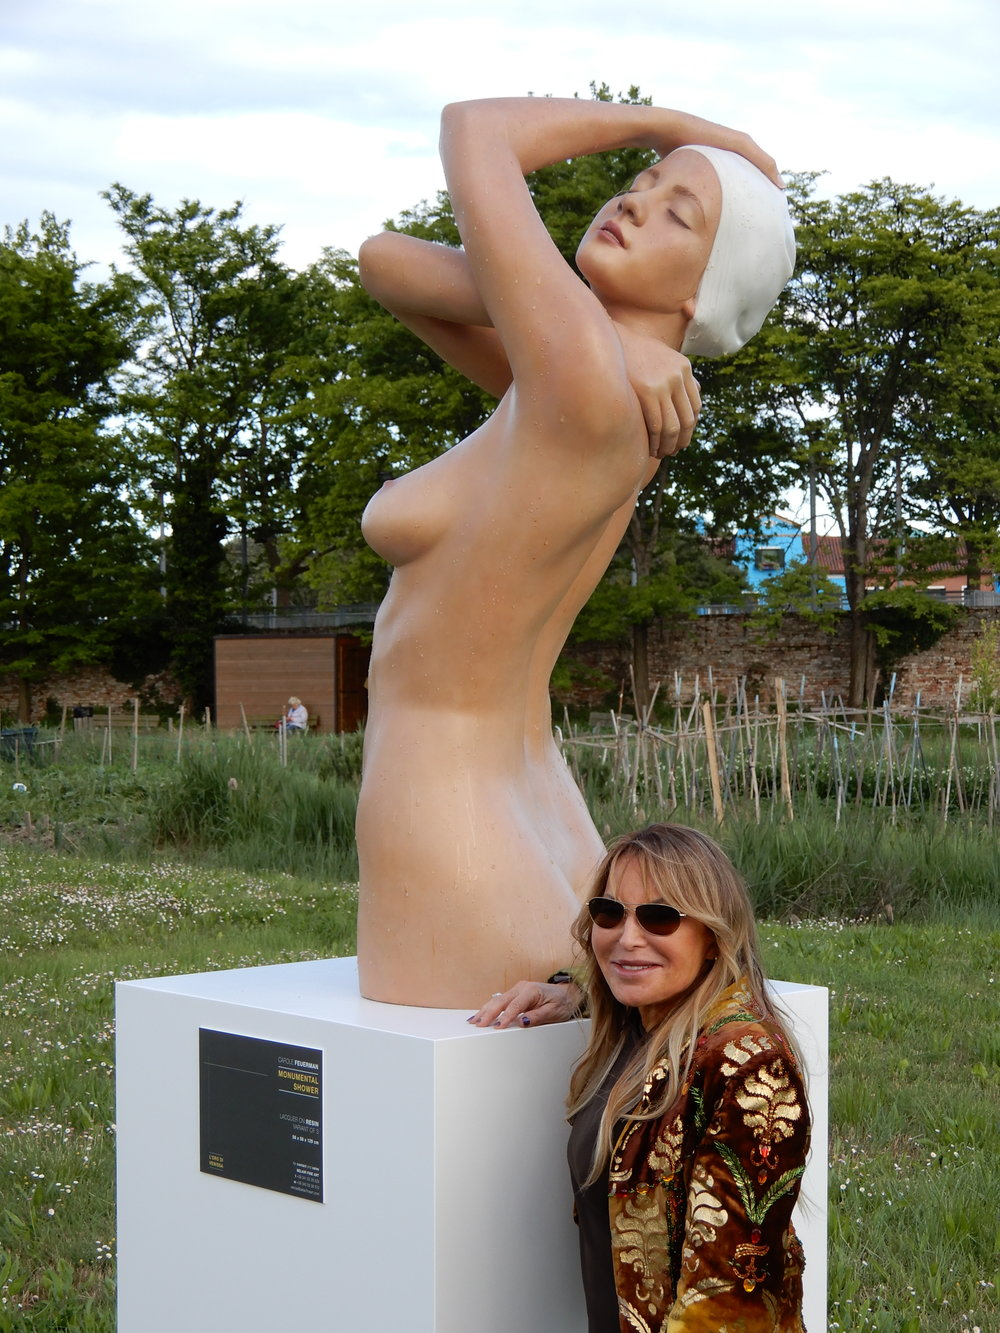 "Carole Feuerman with Monumental Shower, Bruno, Italy, 2009, Resin, 51"" x 21"" x 23"""